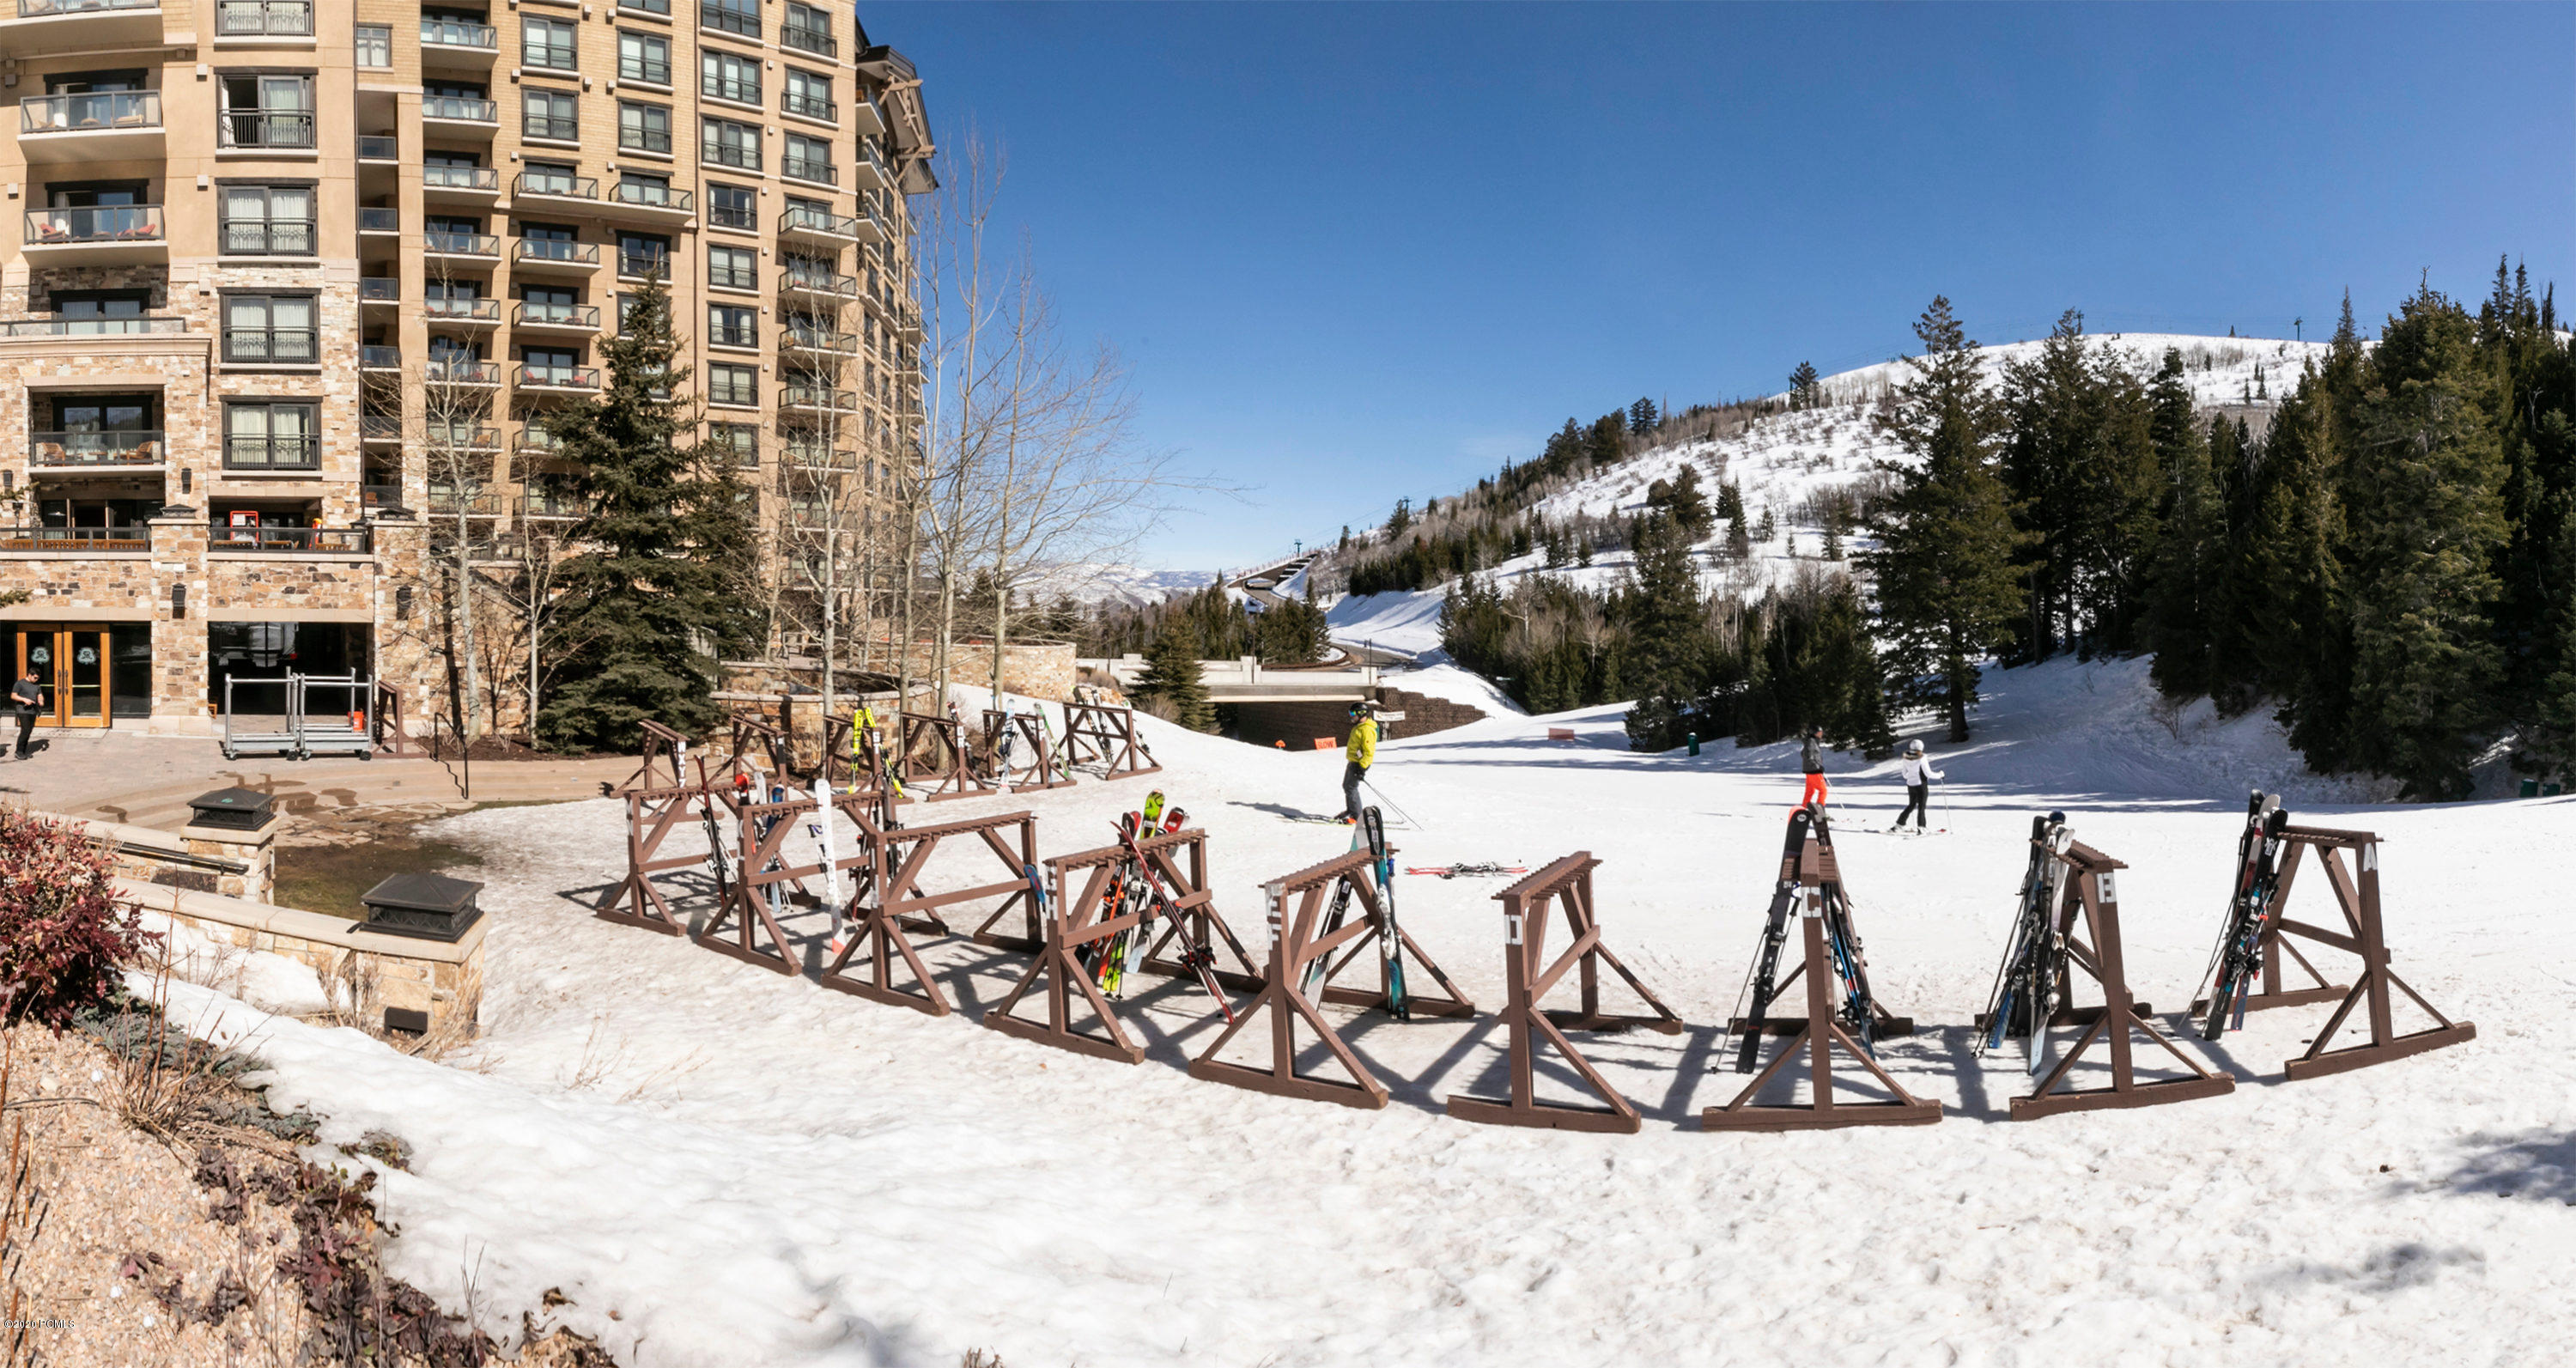 2300 Deer Valley Drive, Park City, Utah 84060, 3 Bedrooms Bedrooms, ,4 BathroomsBathrooms,Condominium,For Sale,Deer Valley,11704830